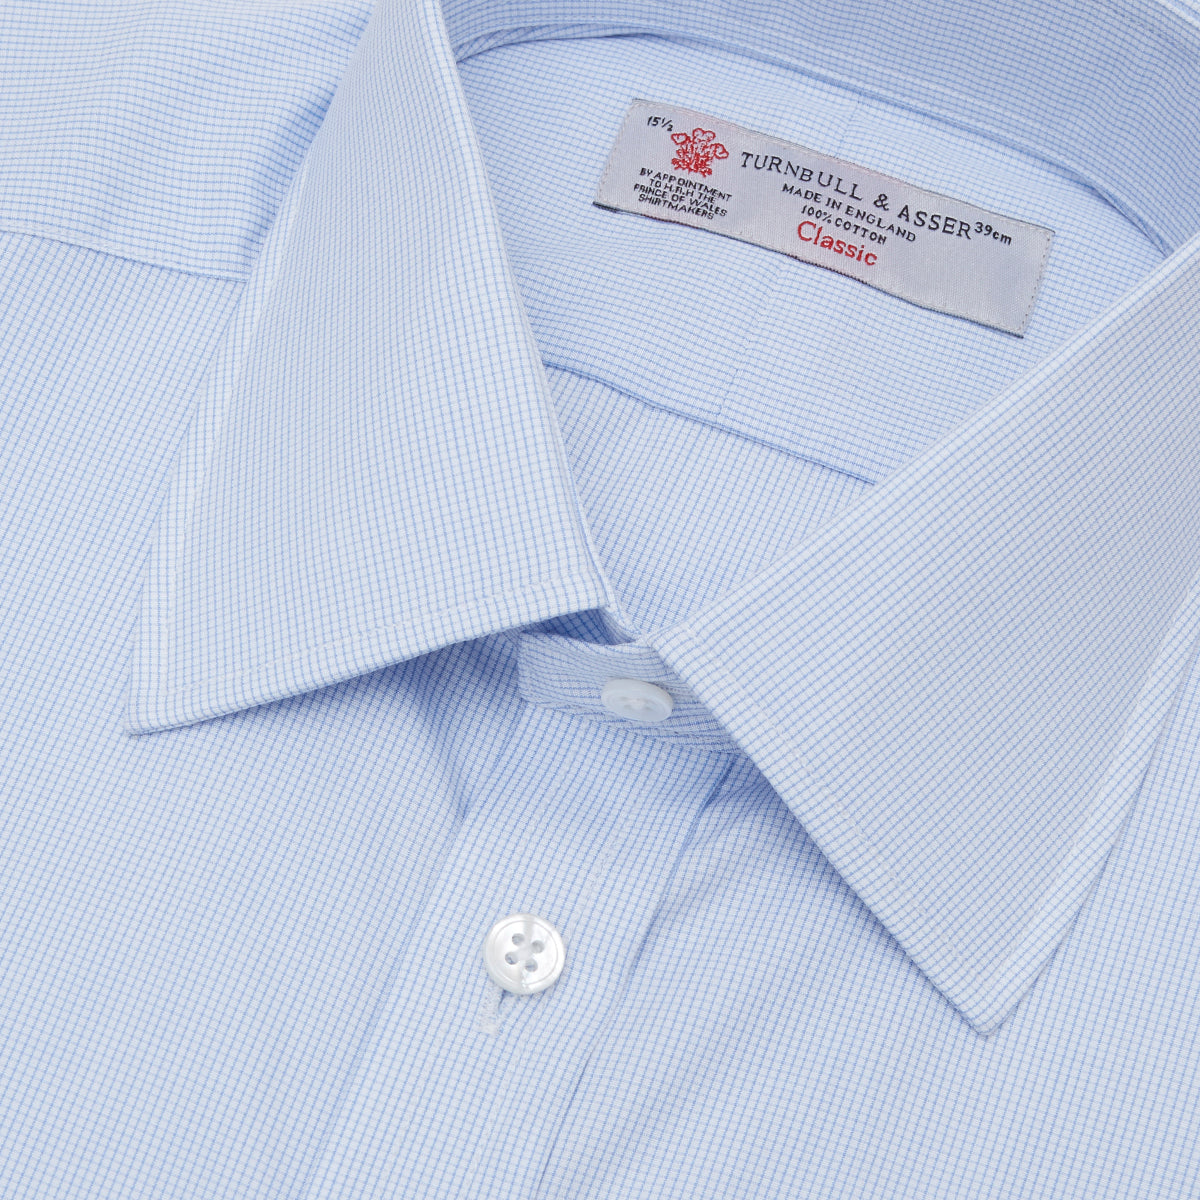 Light Blue Fine Check Shirt with T&A Collar and 3-Button Cuffs